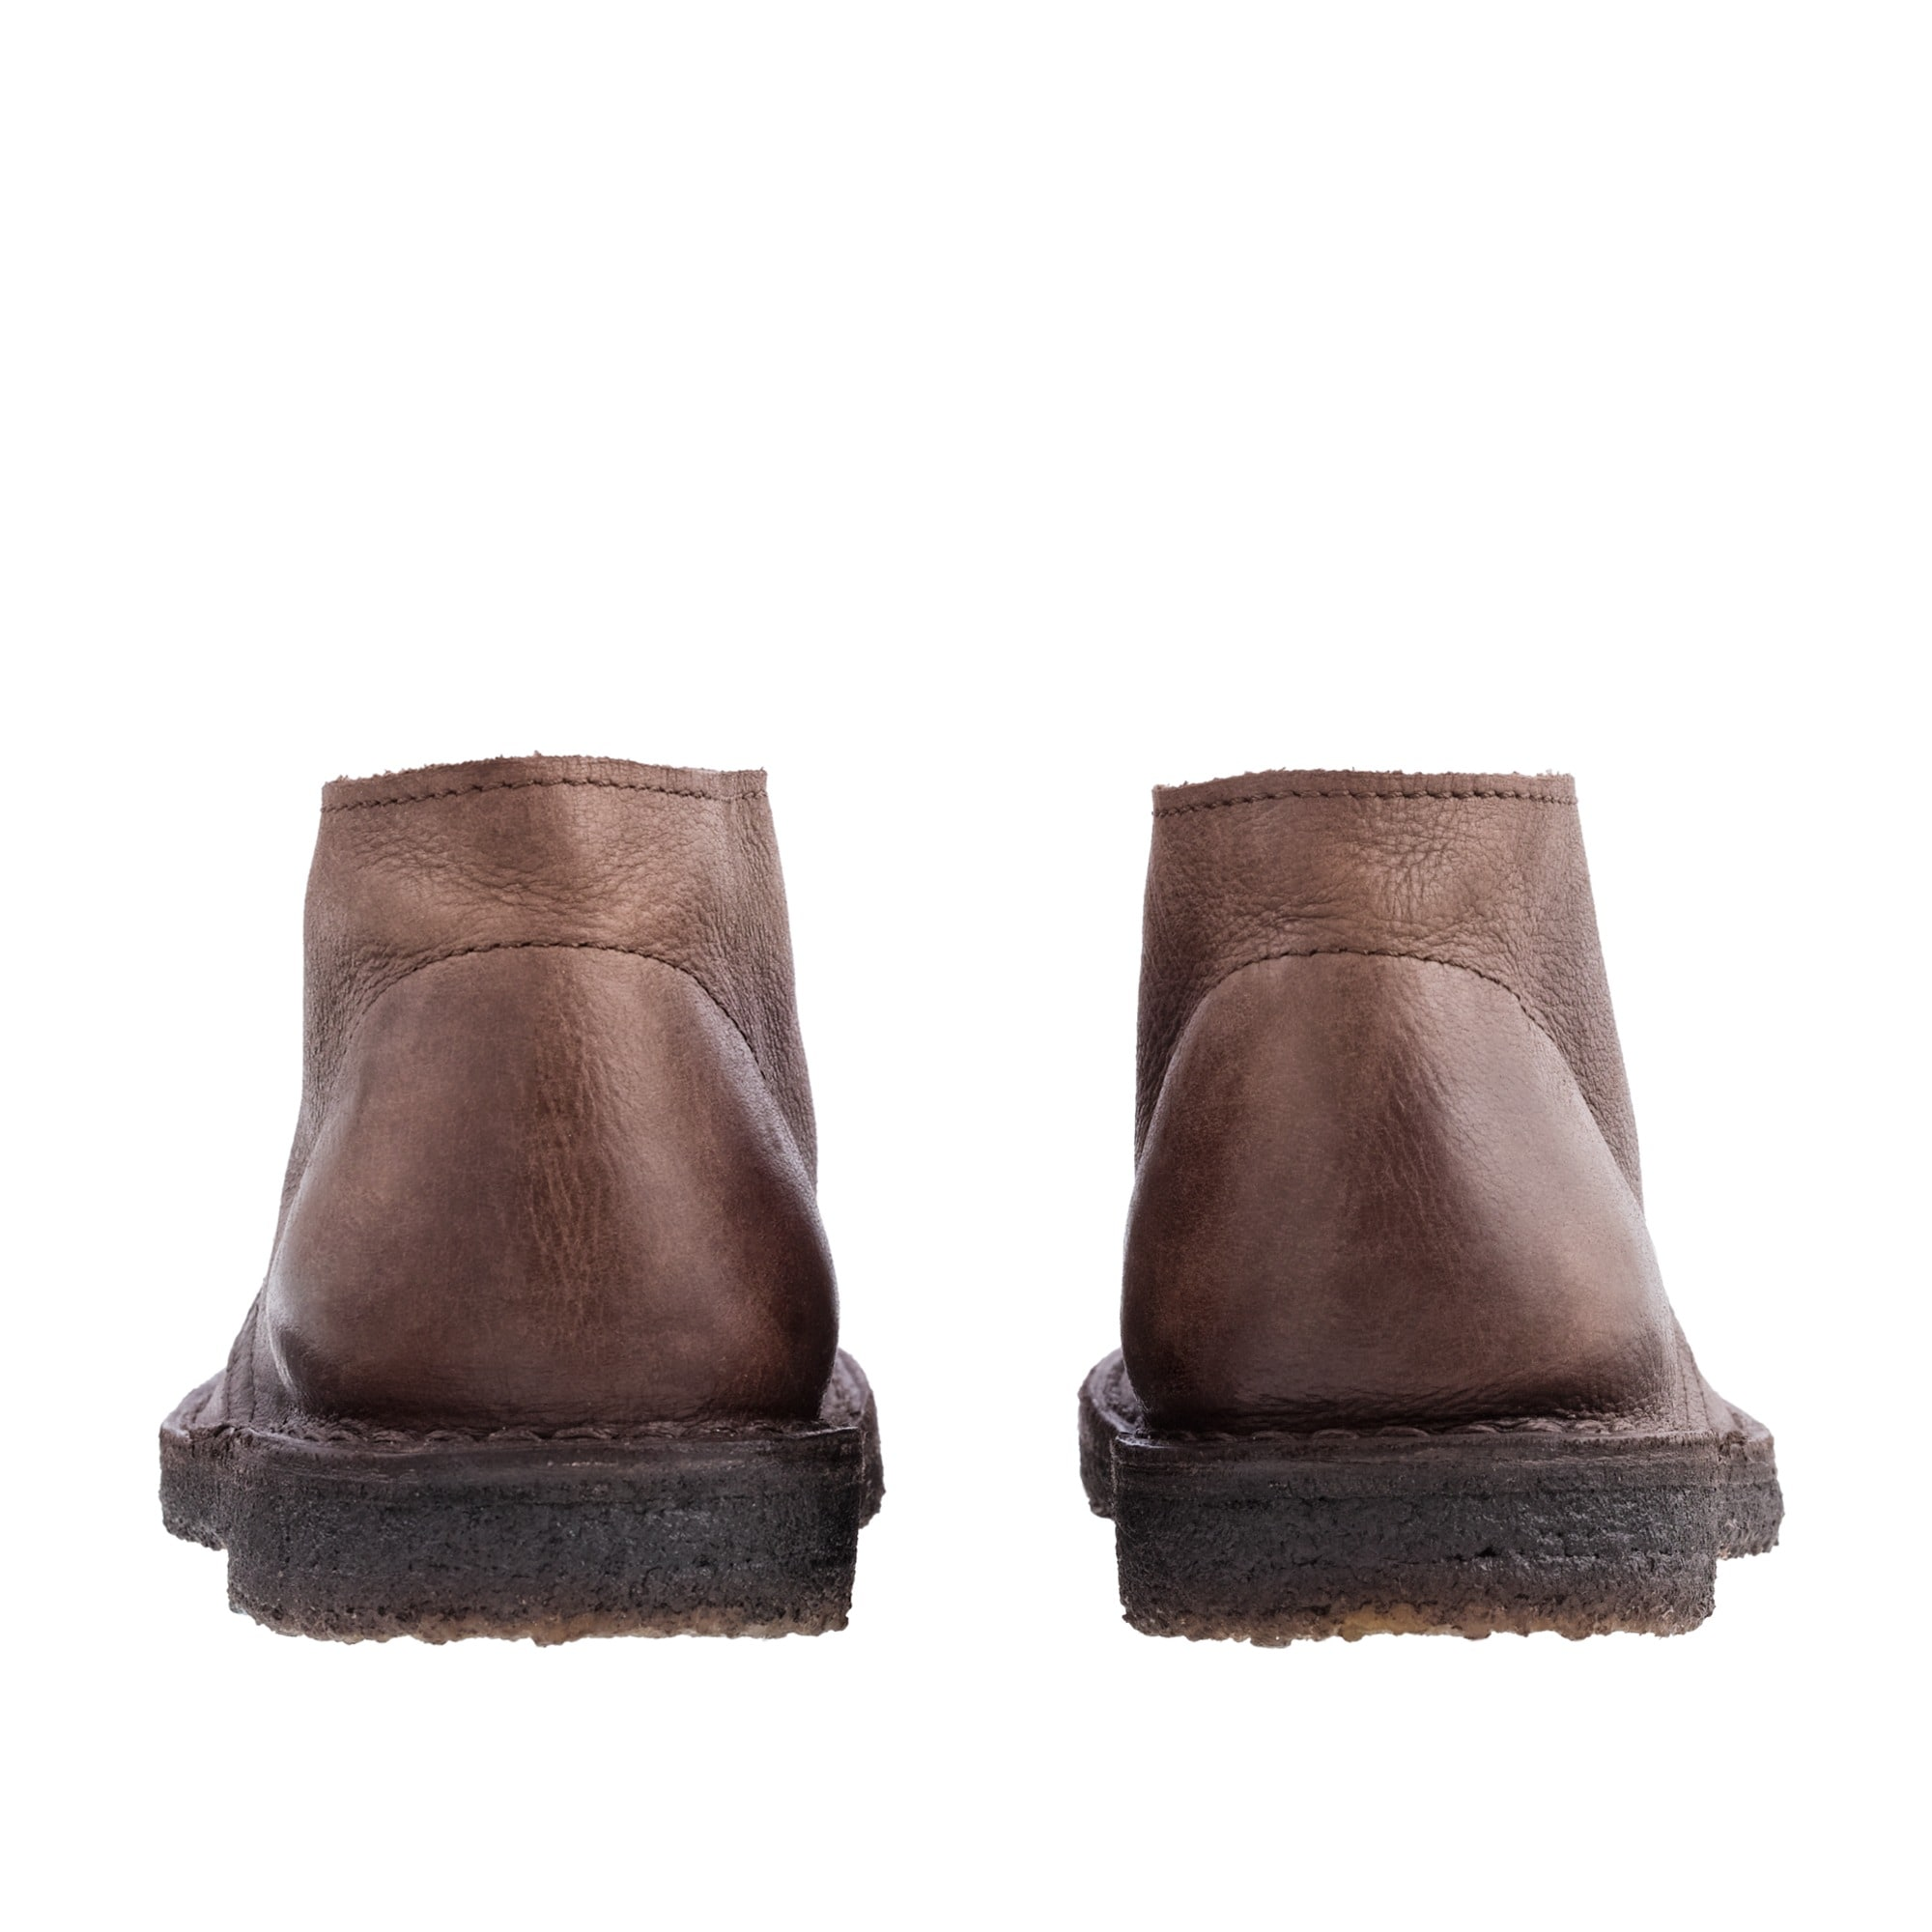 Kids' oiled-leather MacAlister boots